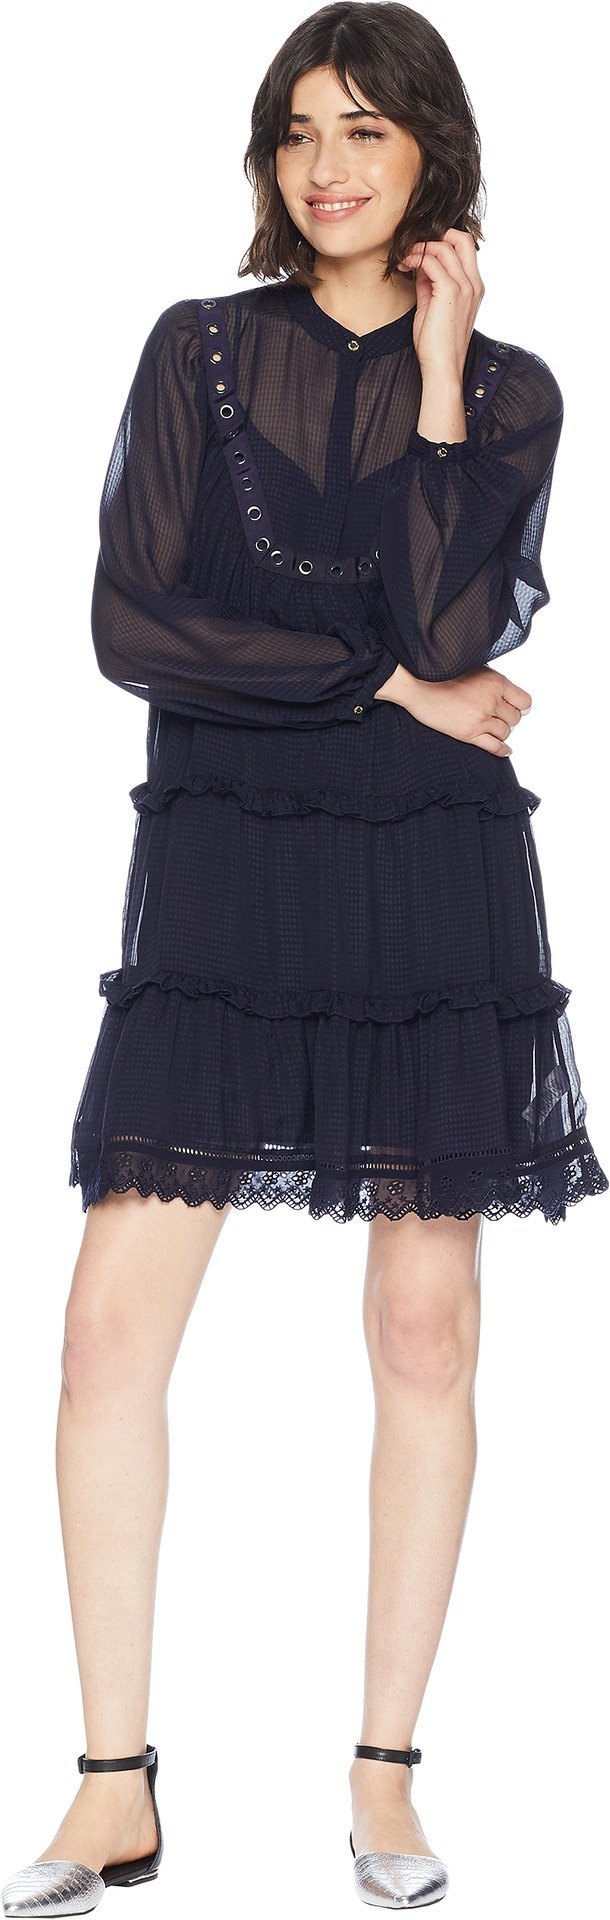 Juicy Couture Women's Seersucker Embroidered Trim Dress Zenith Petite/X-Small by Juicy Couture (Image #1)